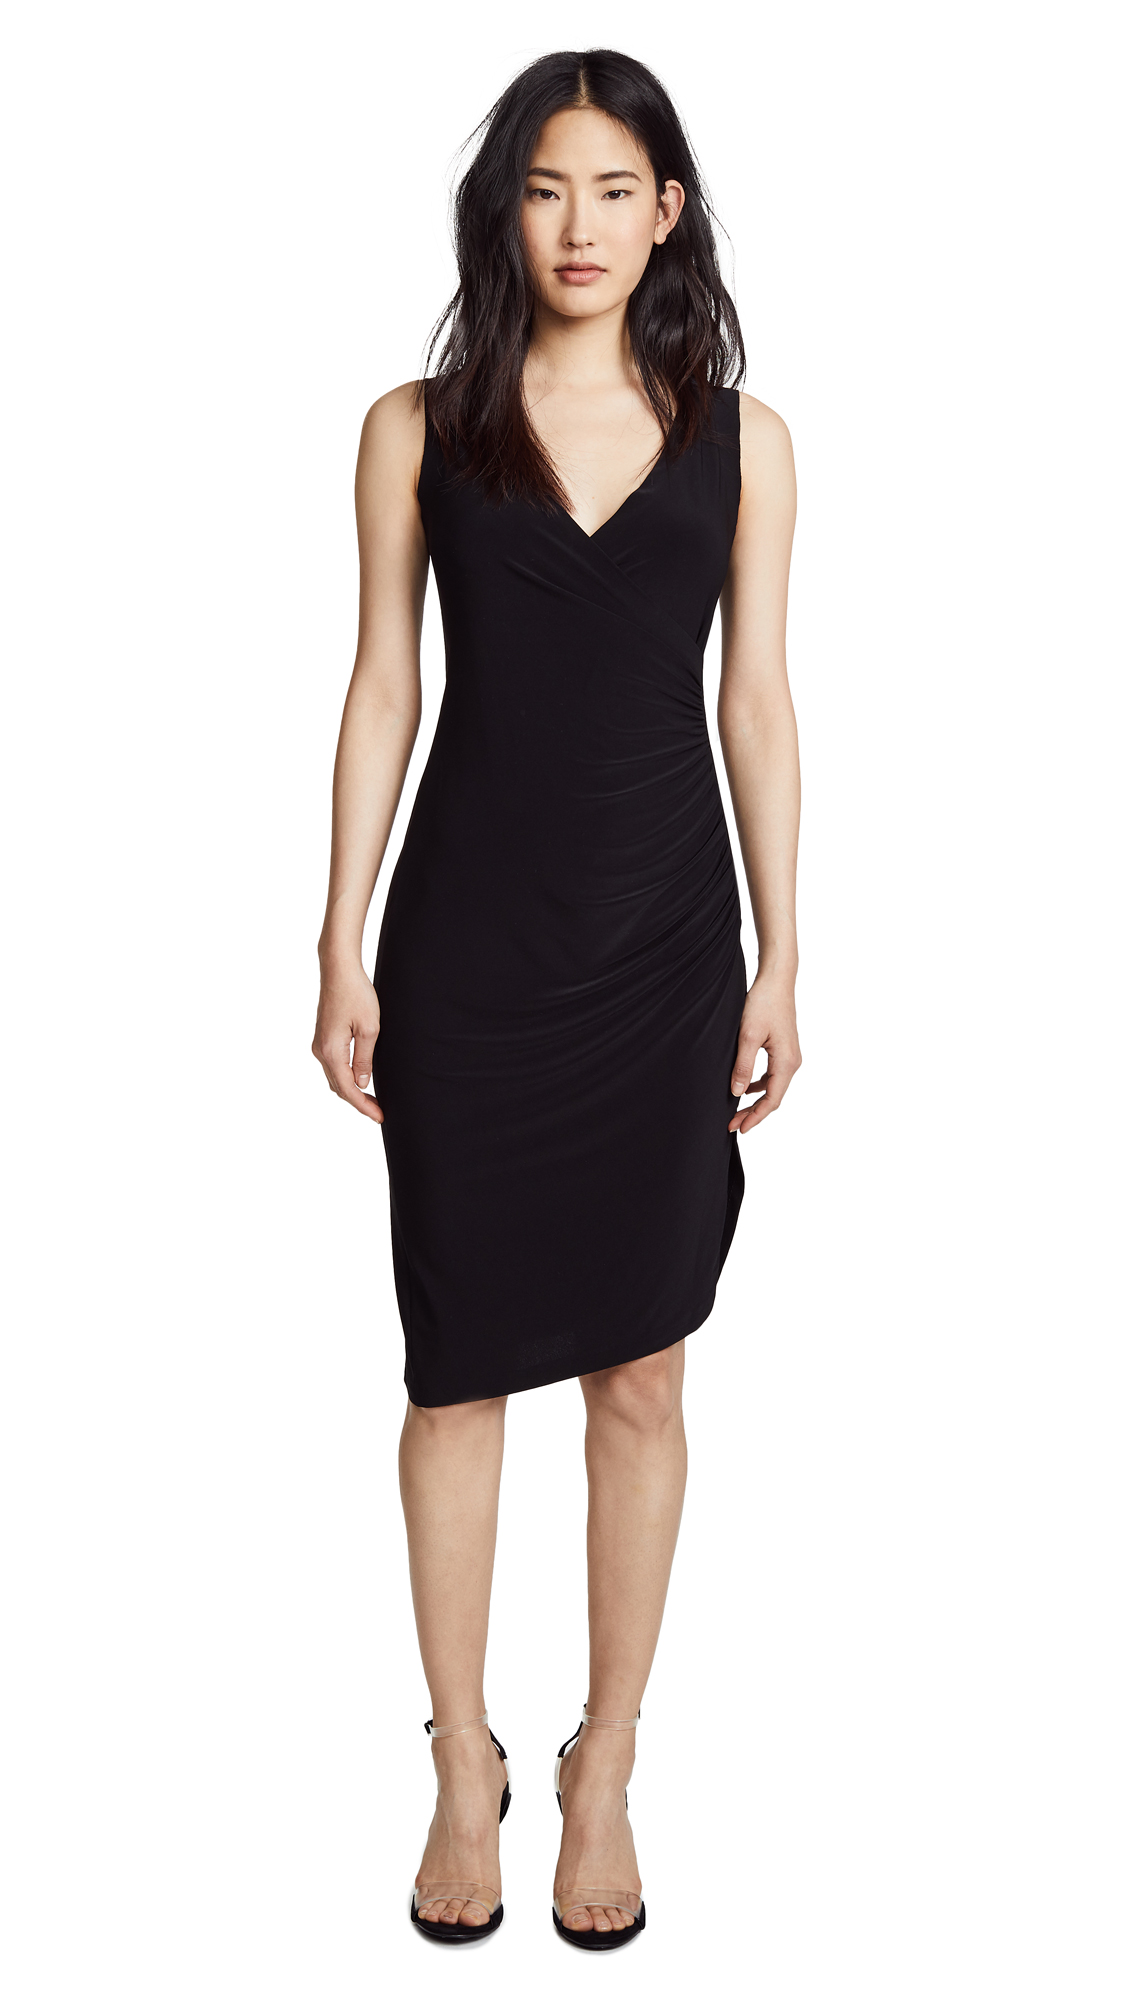 Norma Kamali Sleeveless Drape Dress In Black